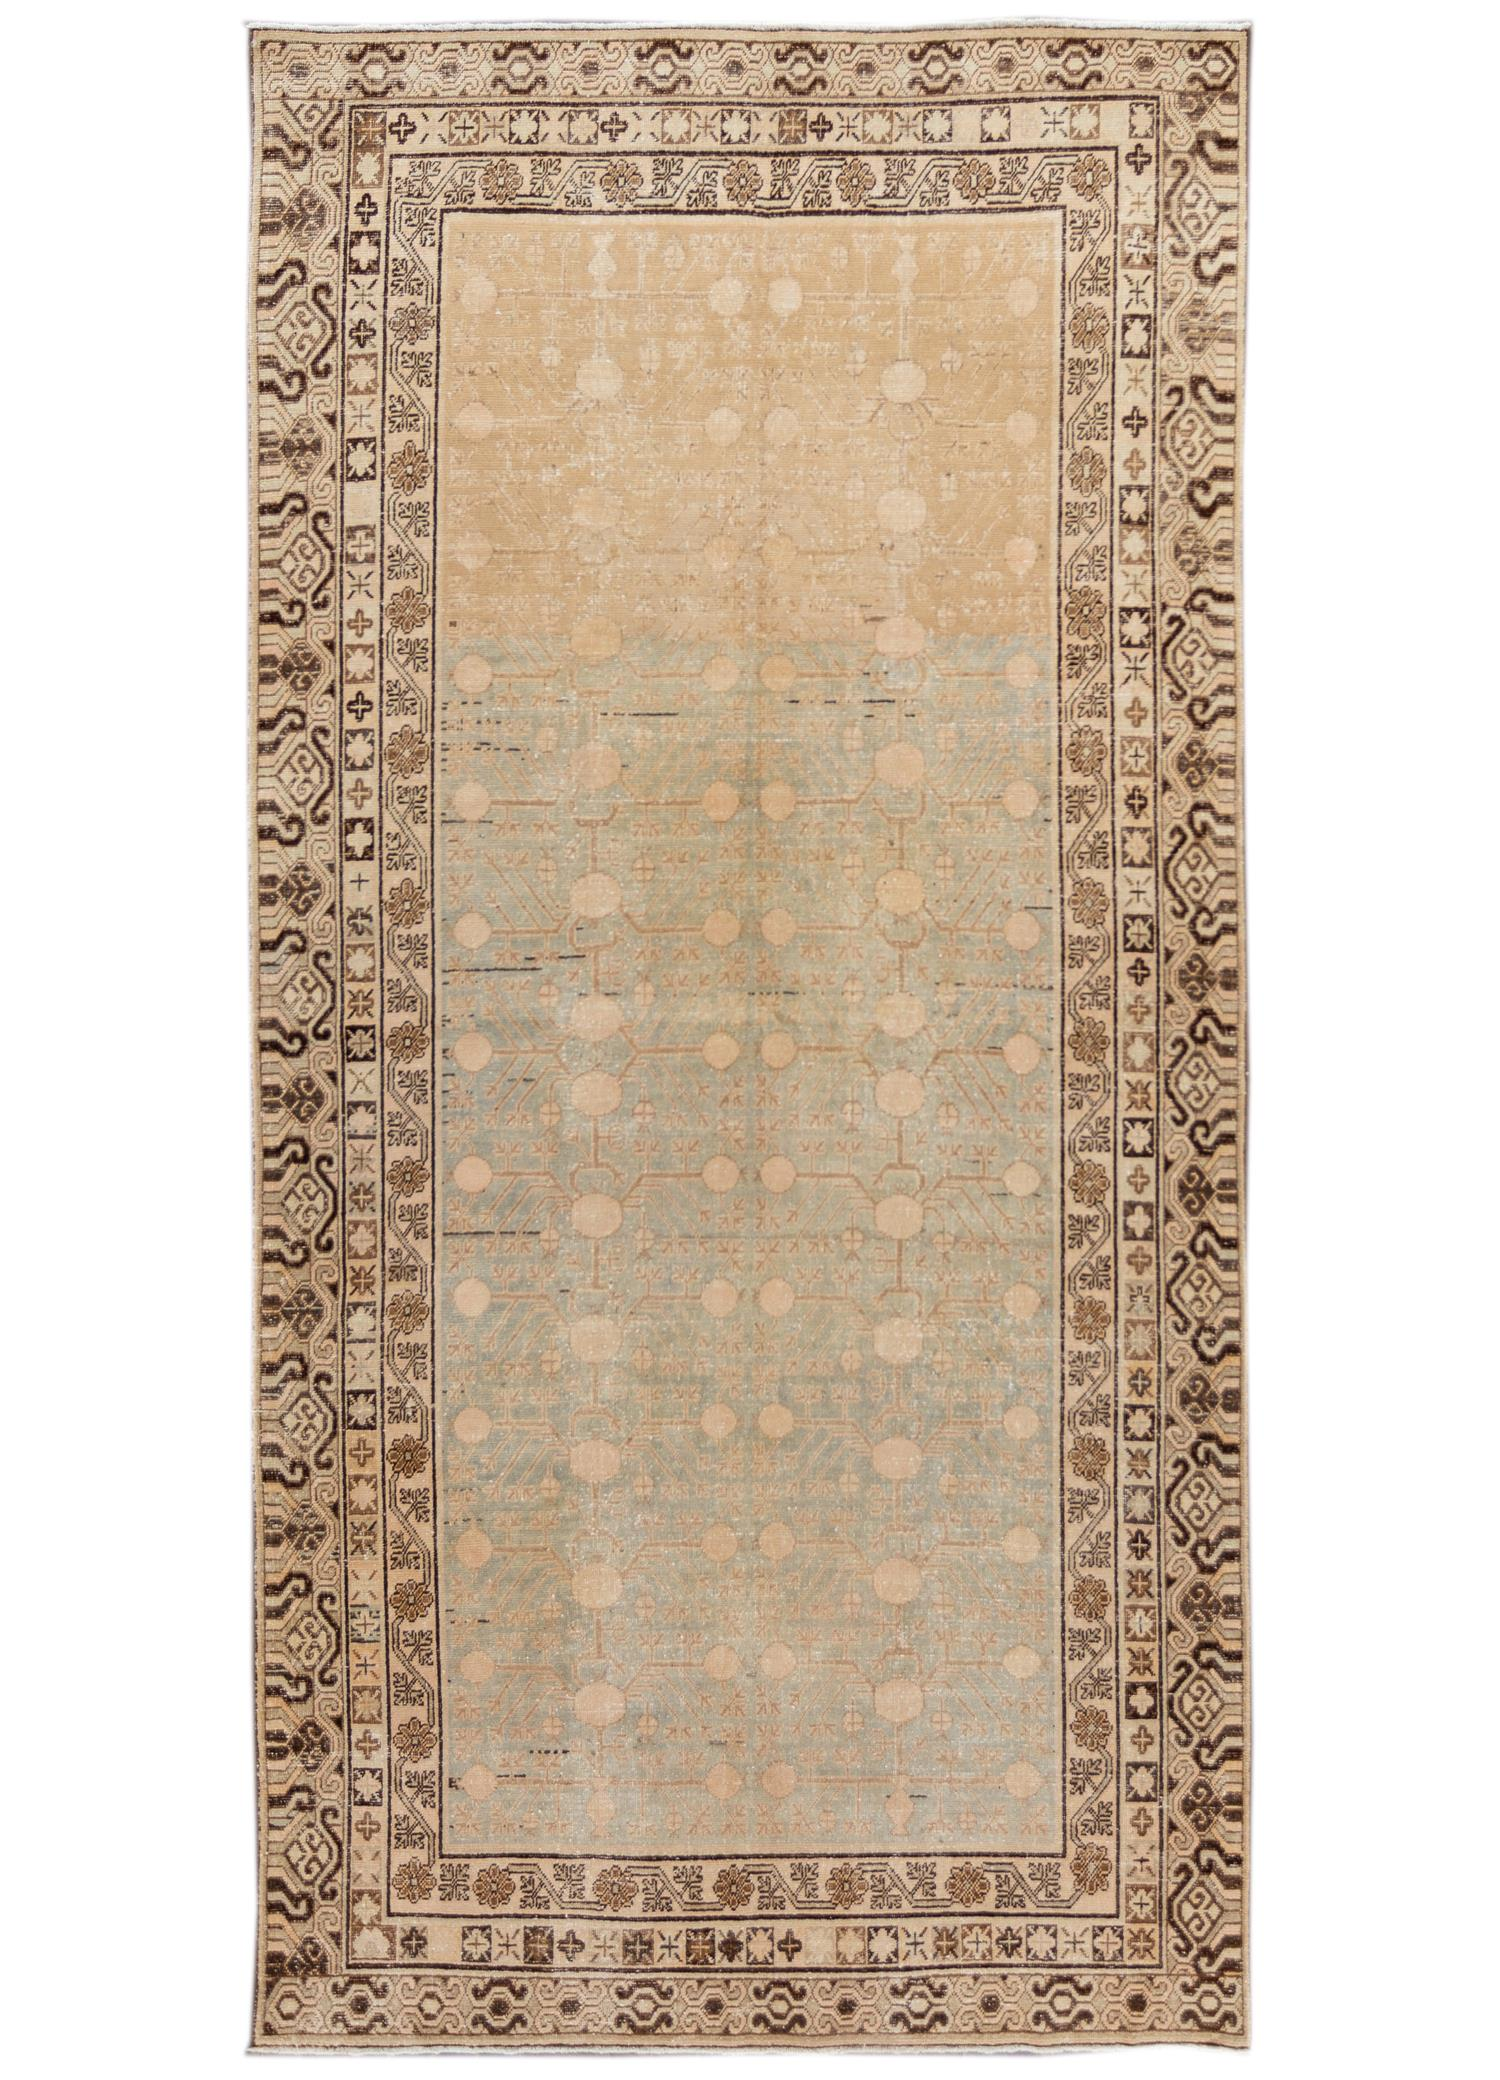 Antique Khotan Runner, #10235255, 6X12